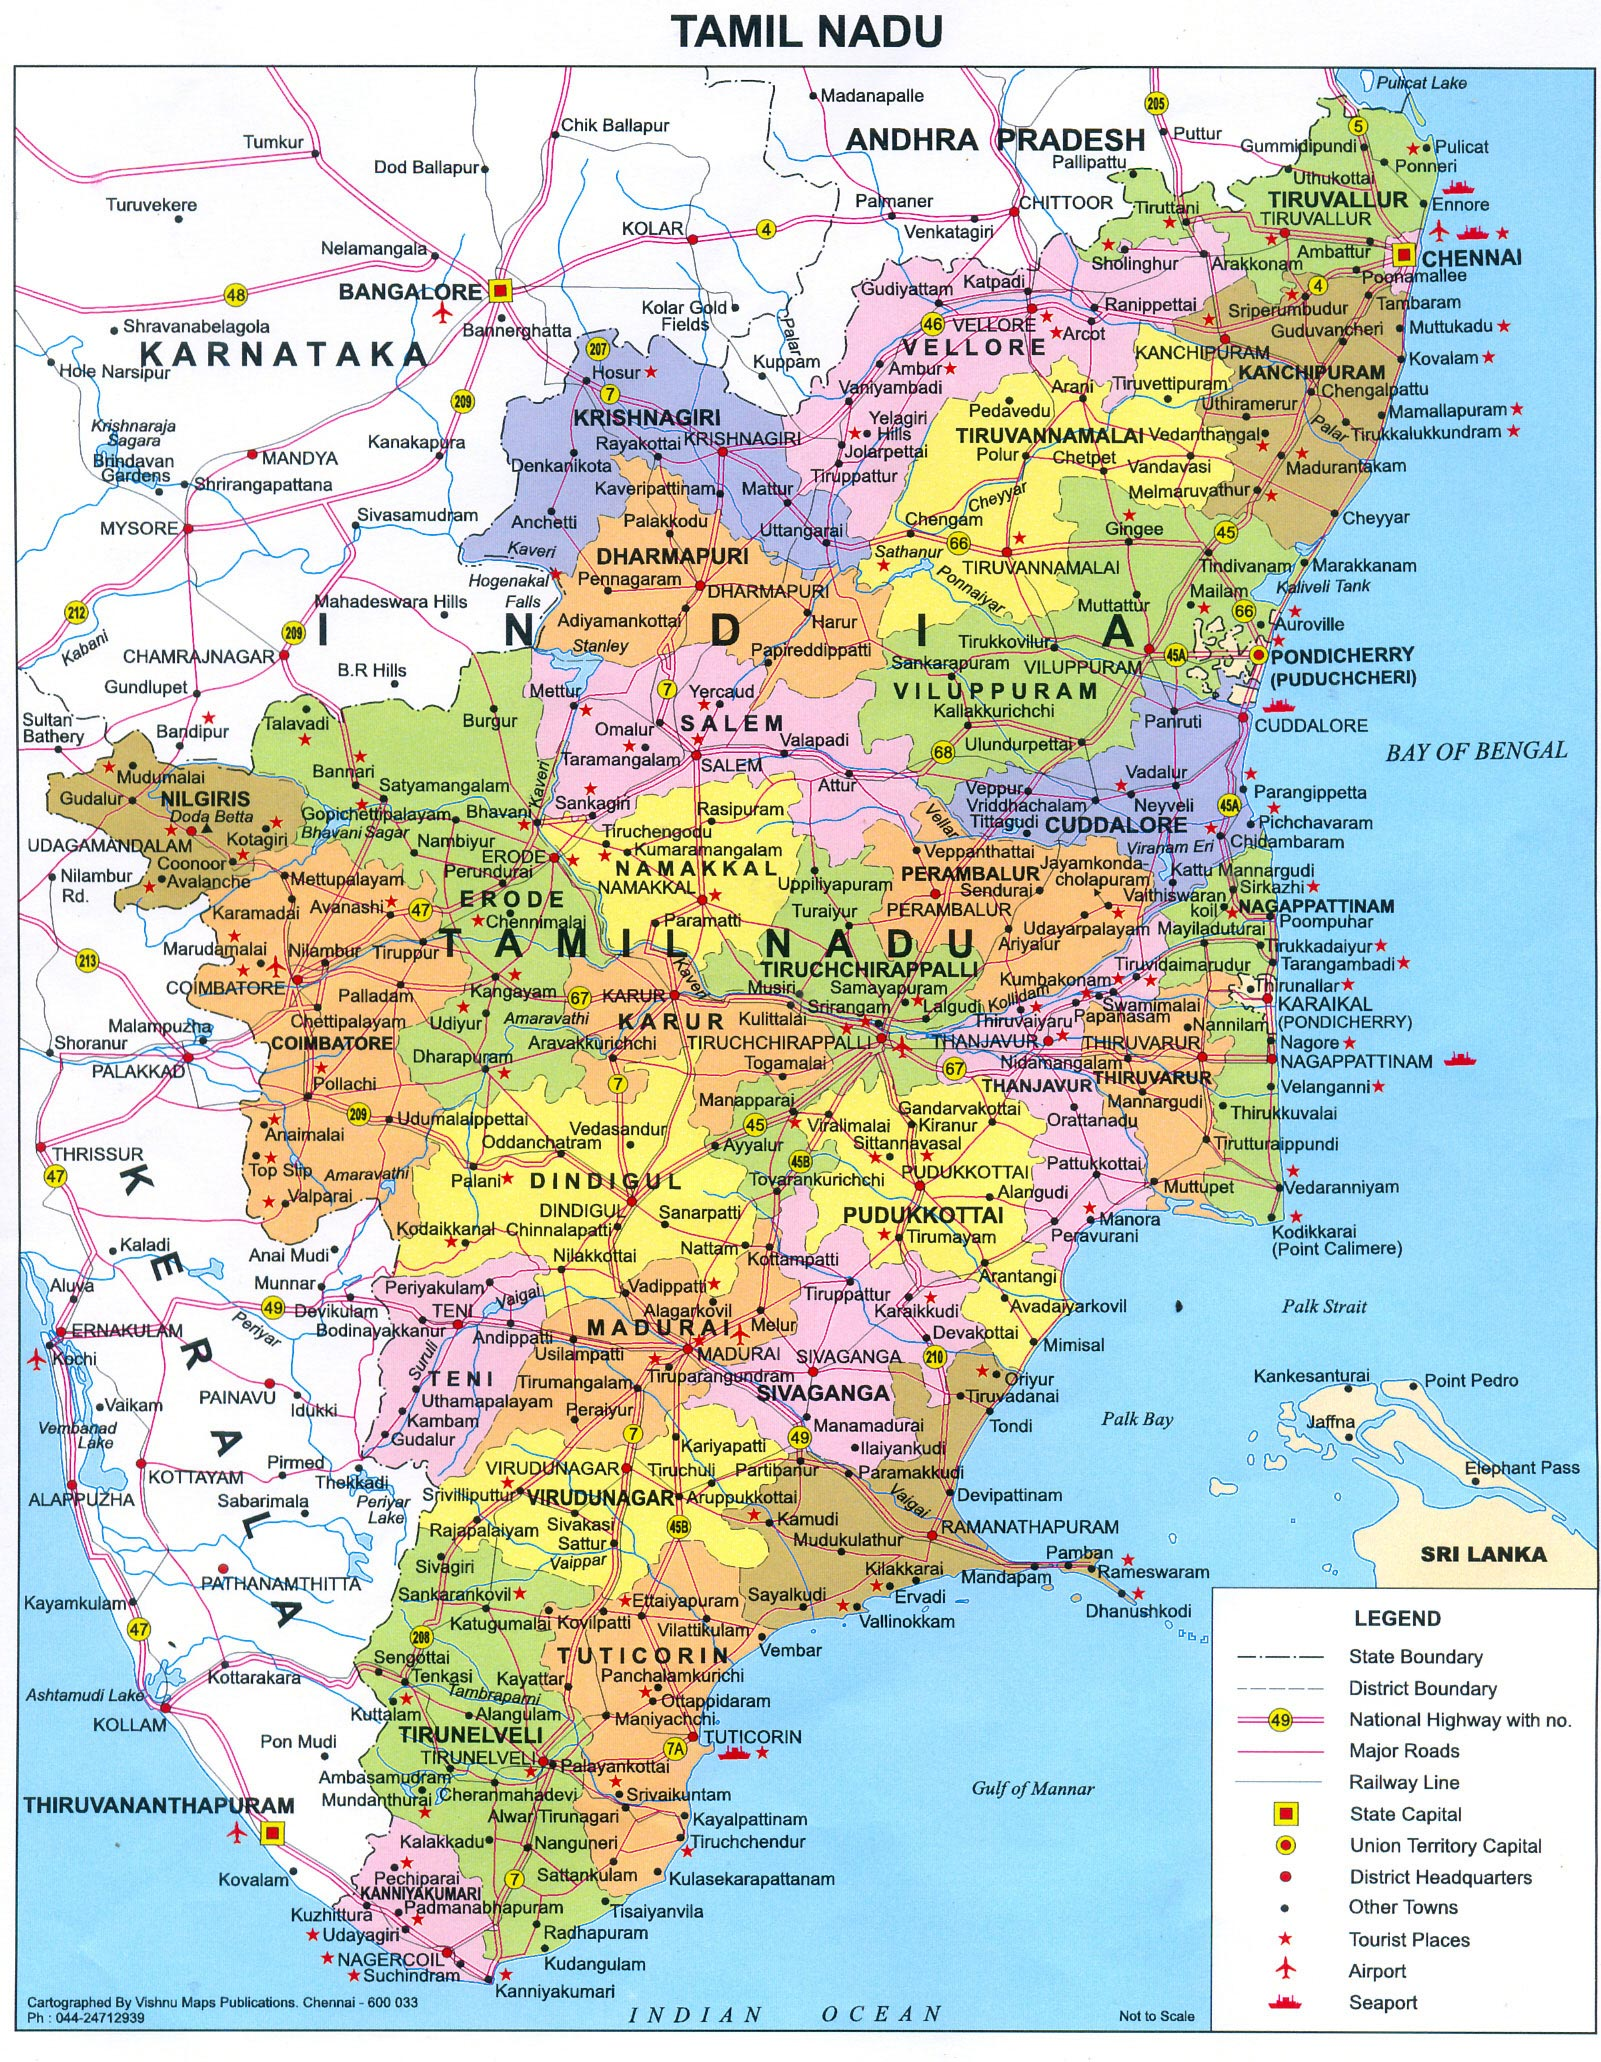 Tamil Nadu Political Map See map details From travelmadeeasy.in